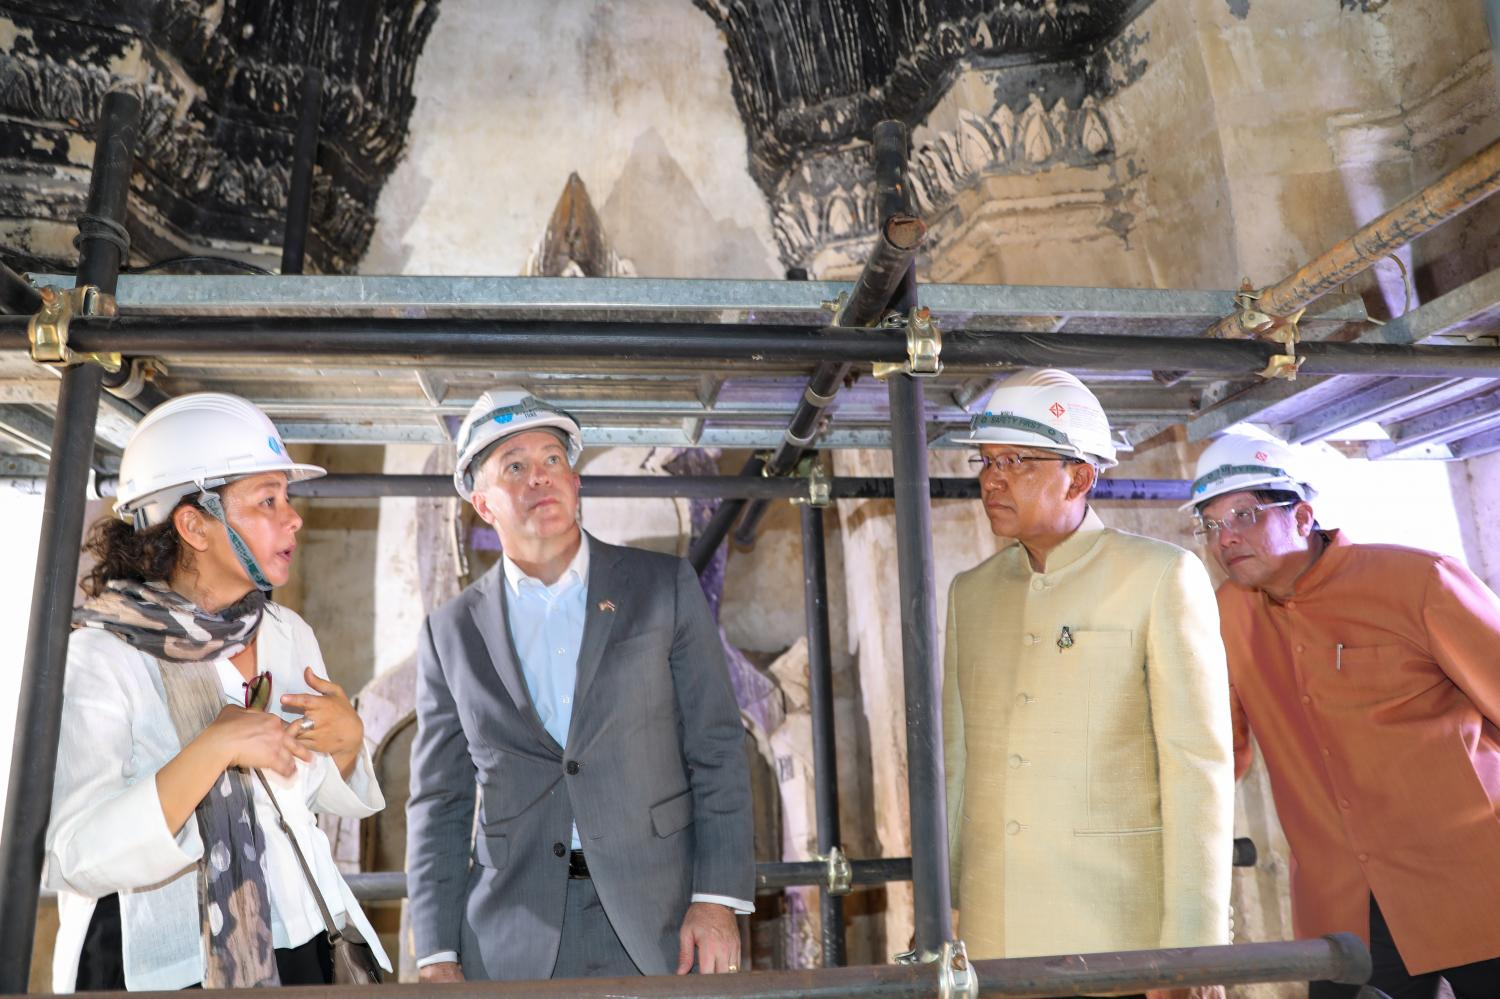 US Ambassador Michael DeSombre, second left, inspects restoration site at Wat Chaiwattanaram in Ayutthaya province. He was accompanied by Ayutthaya governor Panu Yaemsri, second right, and Fine Arts deputy chief Aroonsak Kingmanee, far right.(Photo courtesy of US embassy)